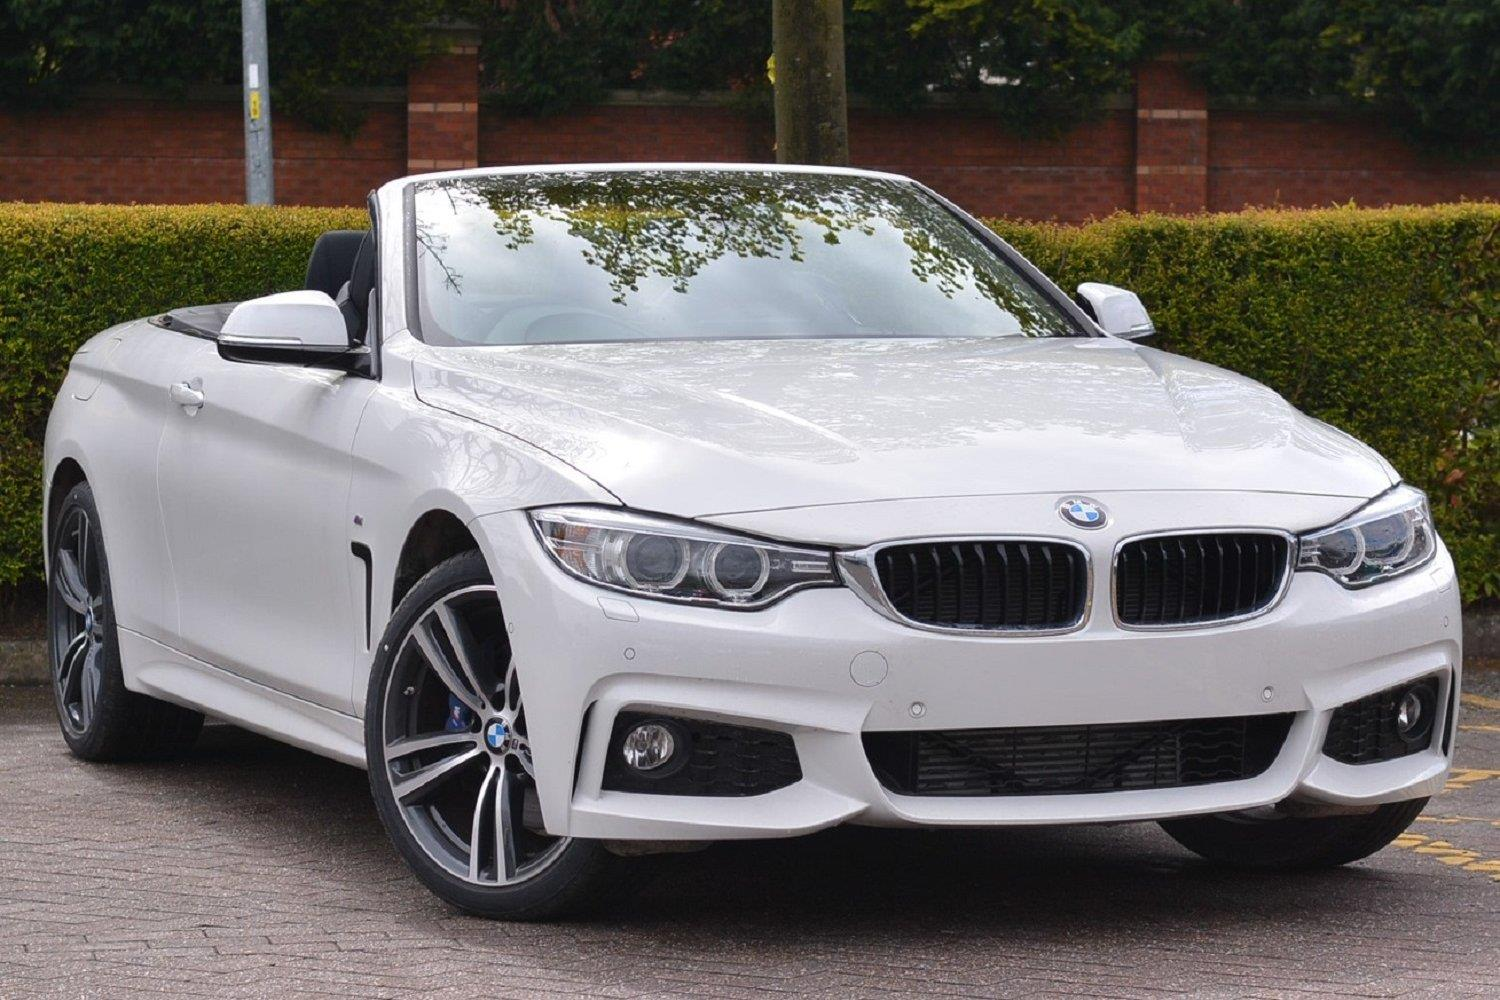 BMW 4 Series Convertible MJ17ECF - Image 10